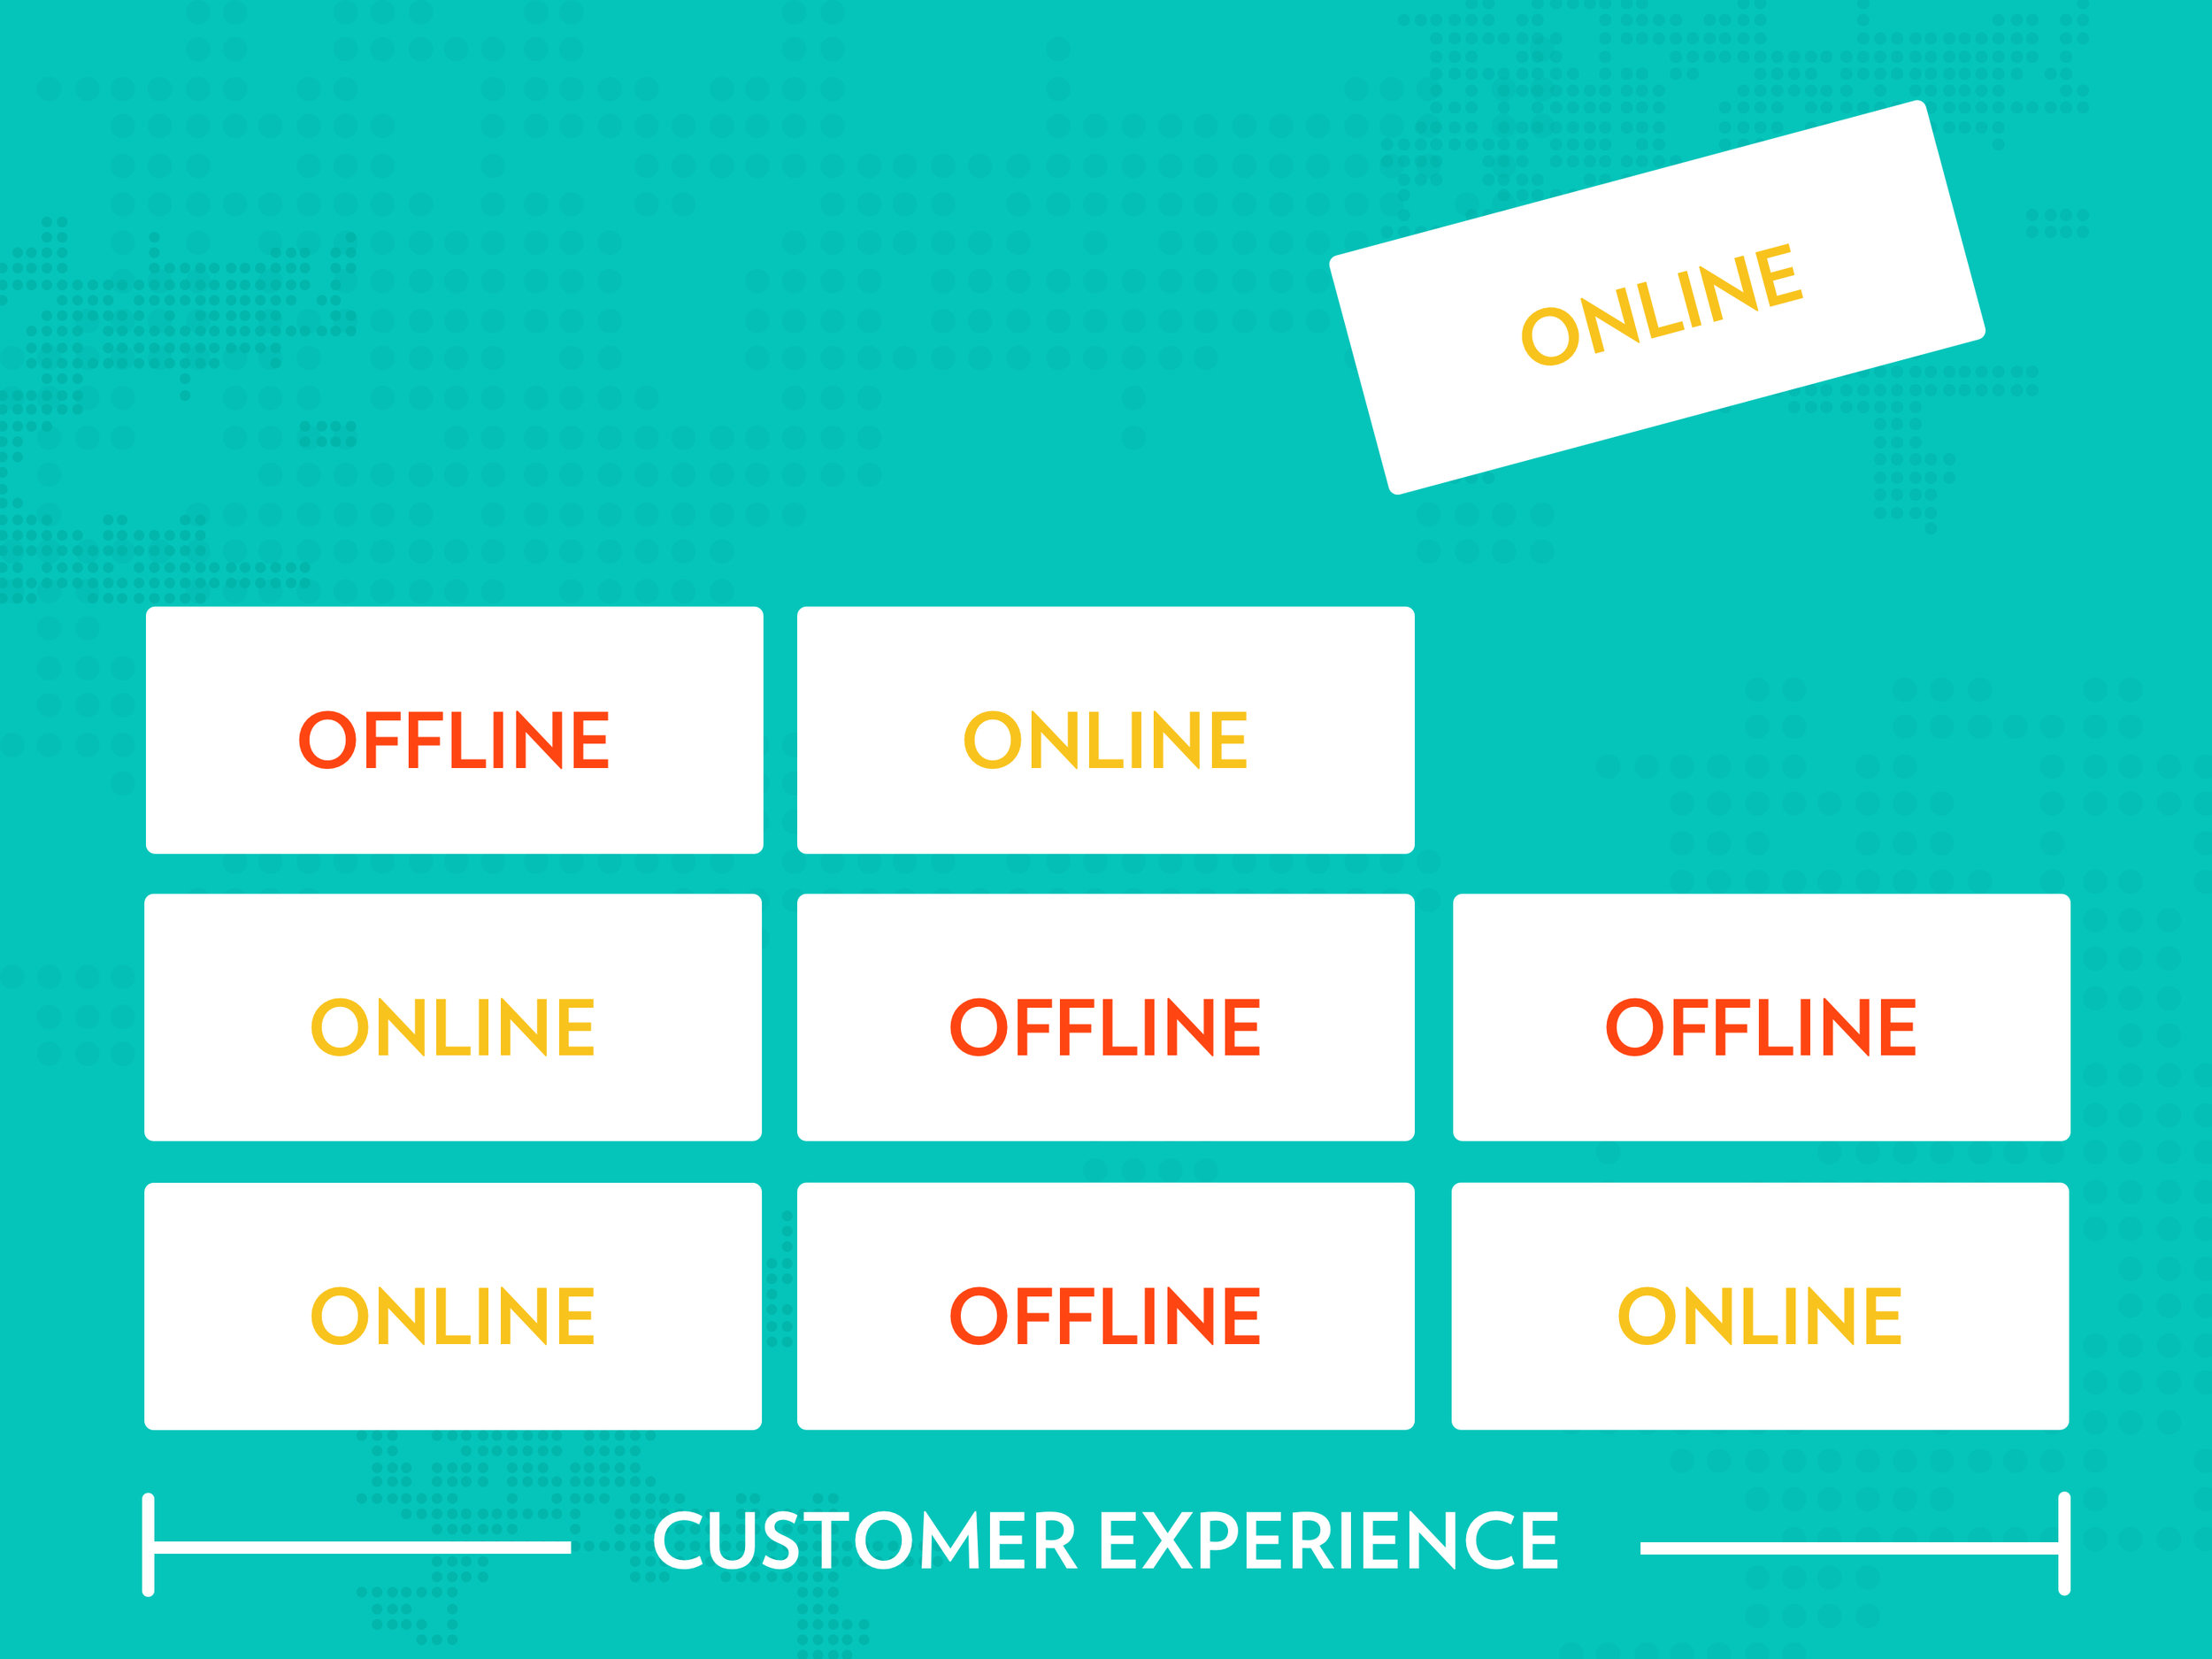 The customer experience consists of online and offline interactions